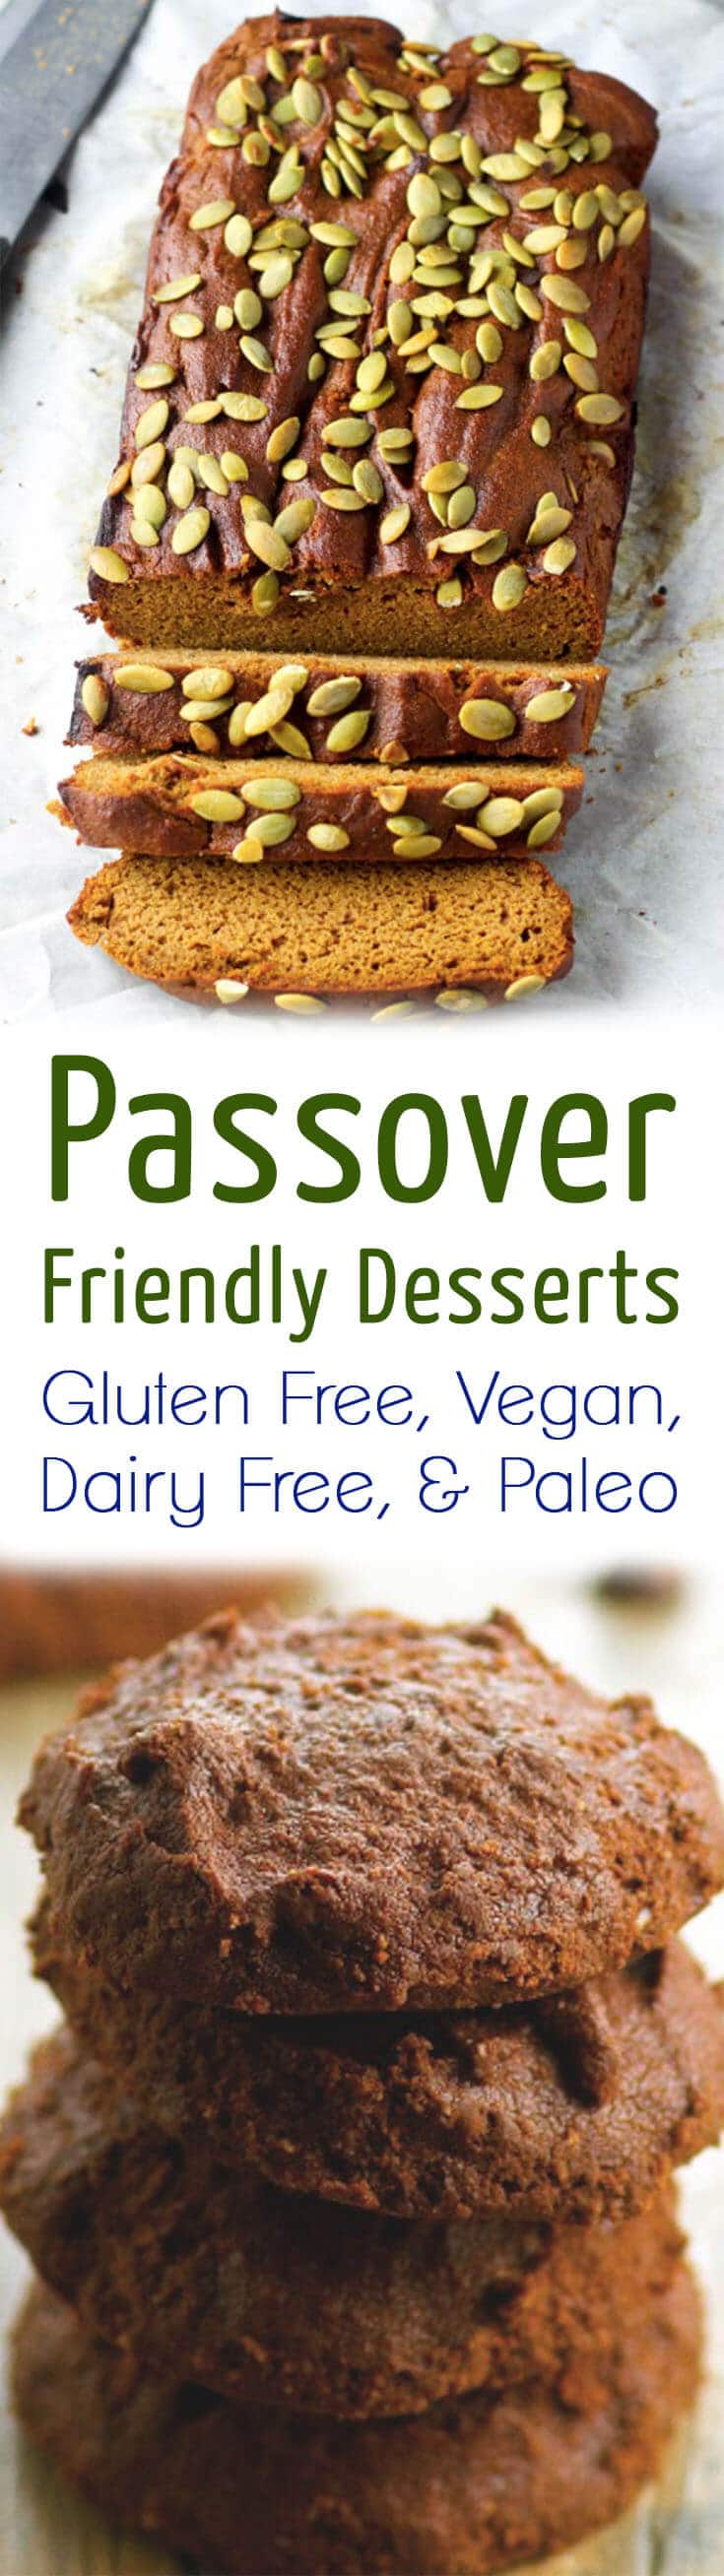 Round up of the top 30 Passover Friendly Desserts that are healthy, gluten free, dairy free, vegan and paleo-approved!